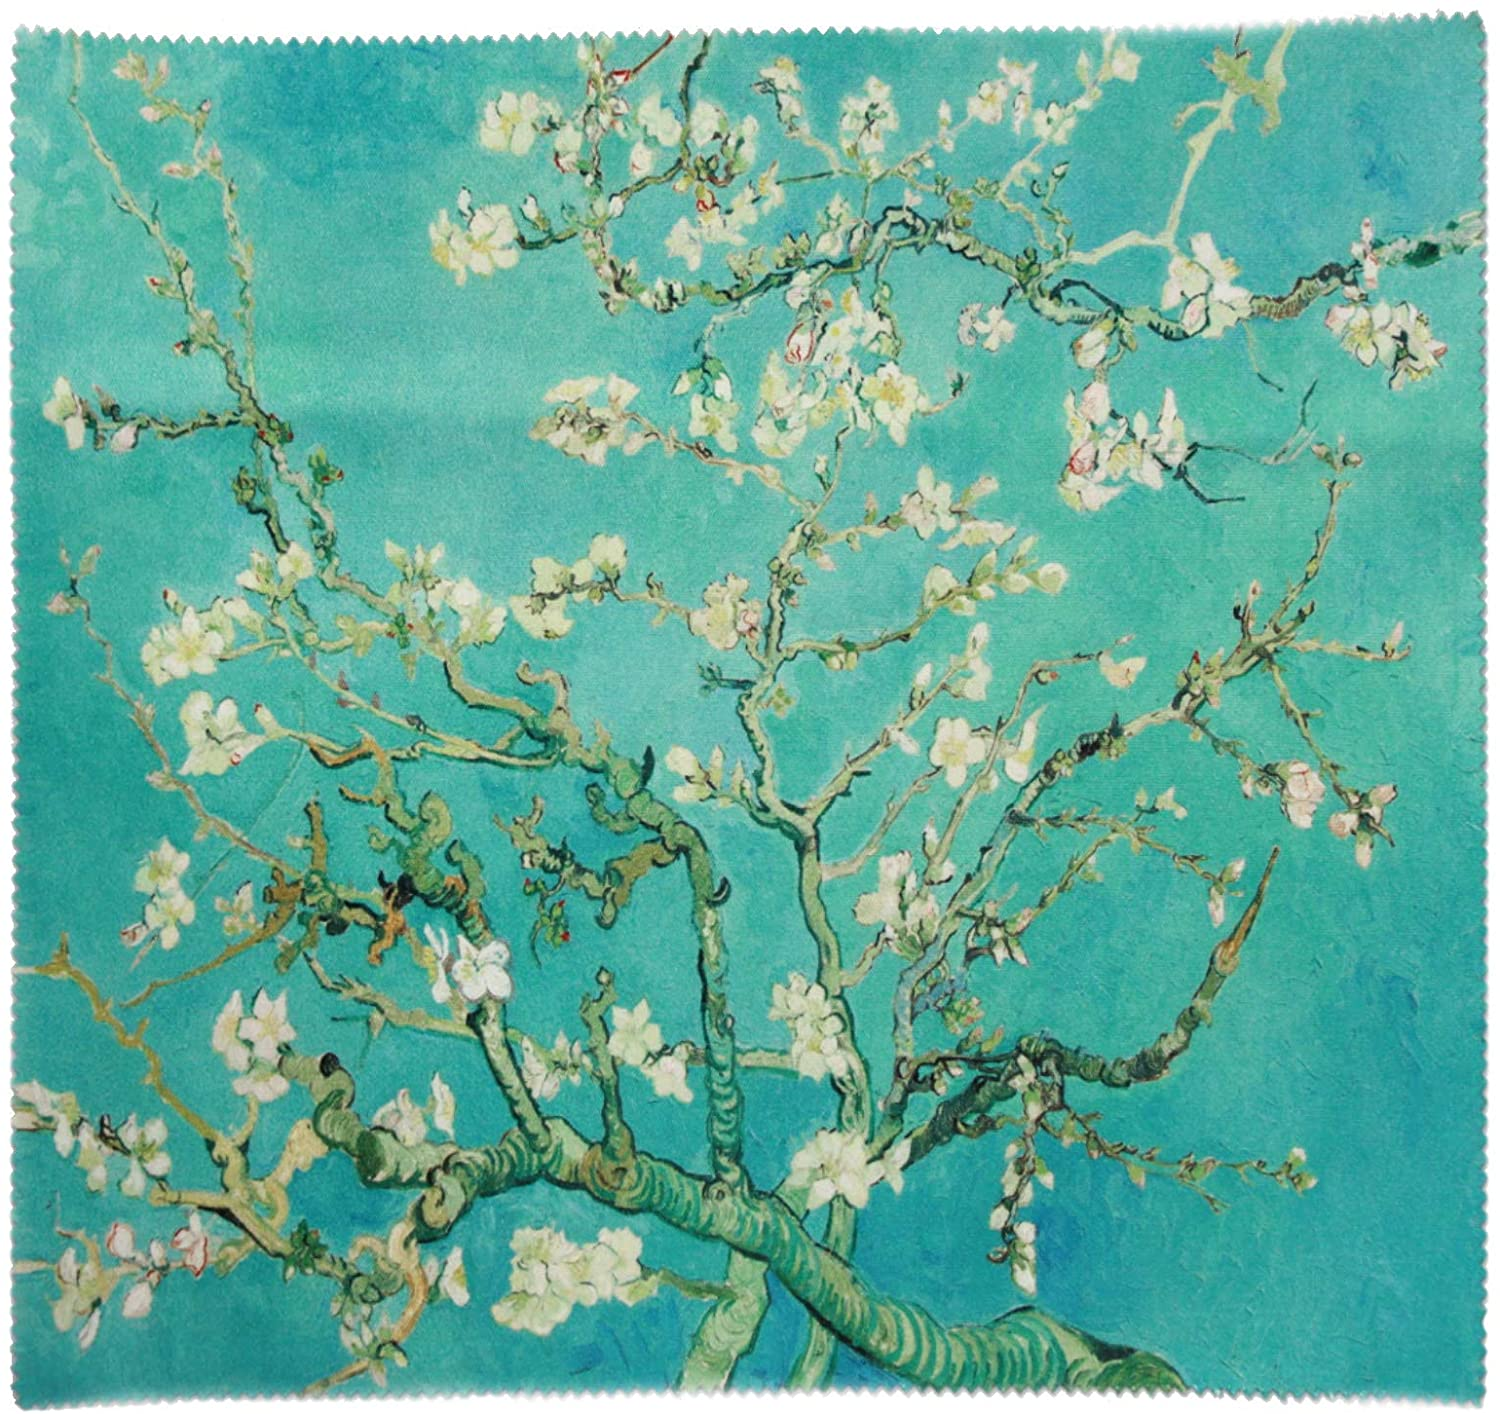 Vincent Van Gogh Oil Painting Large Microfiber Cleaning Cloth 11x9 (Almond Blossoms)